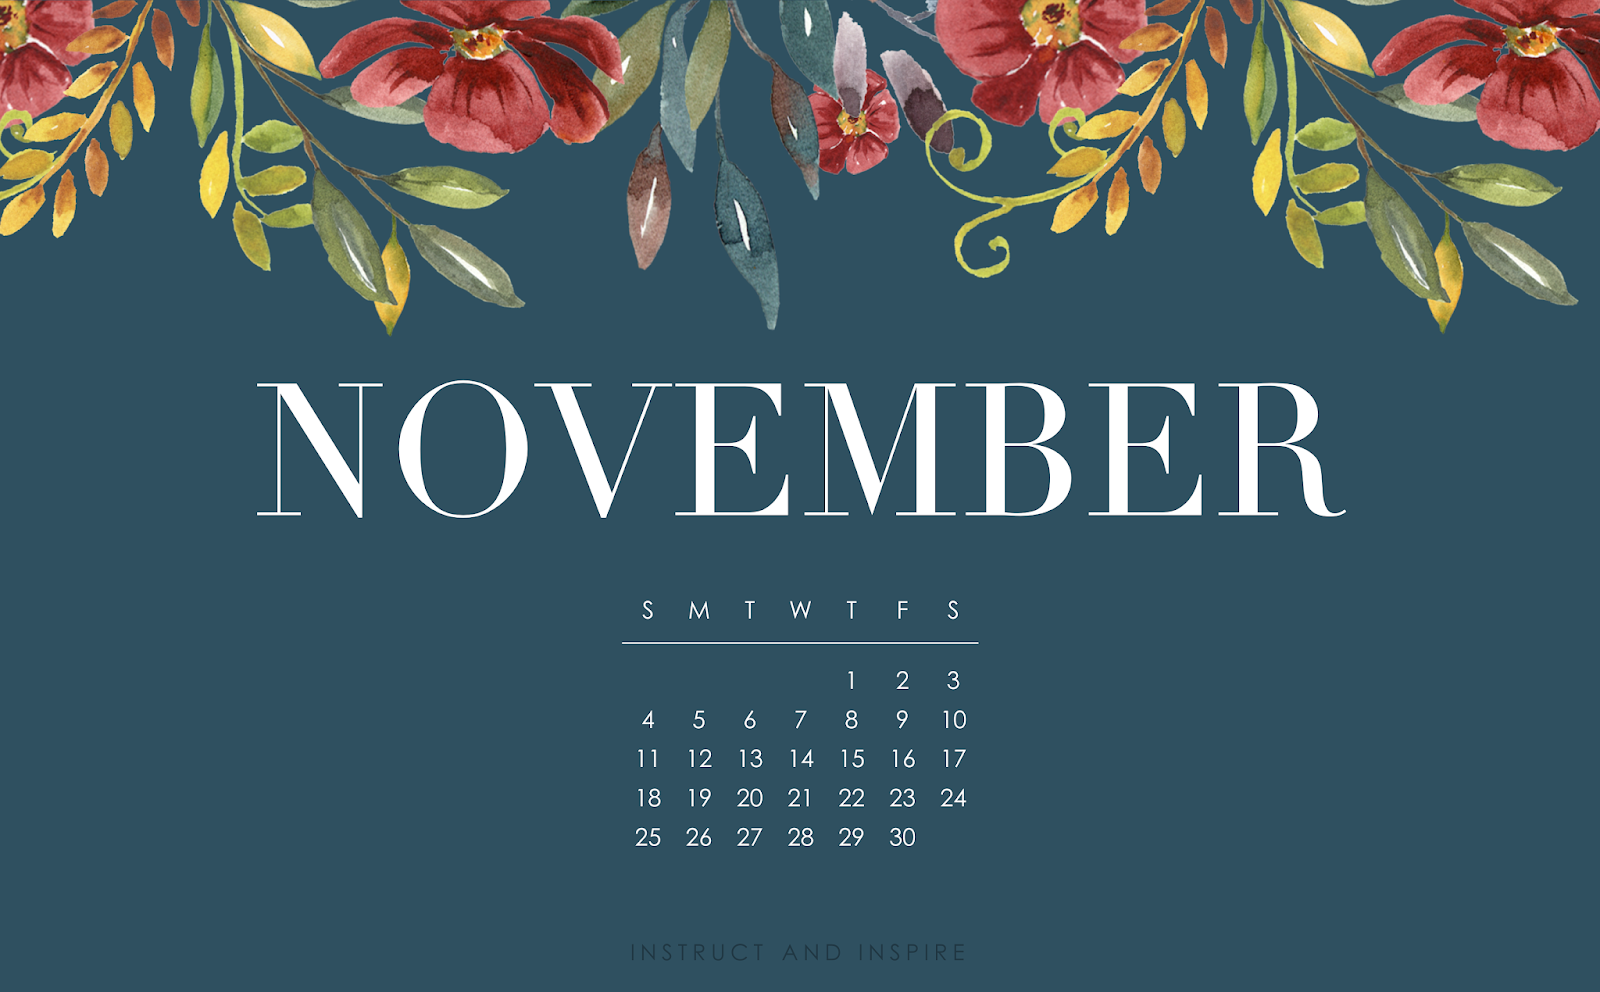 November 2018 Wallpapers Instruct And Inspire